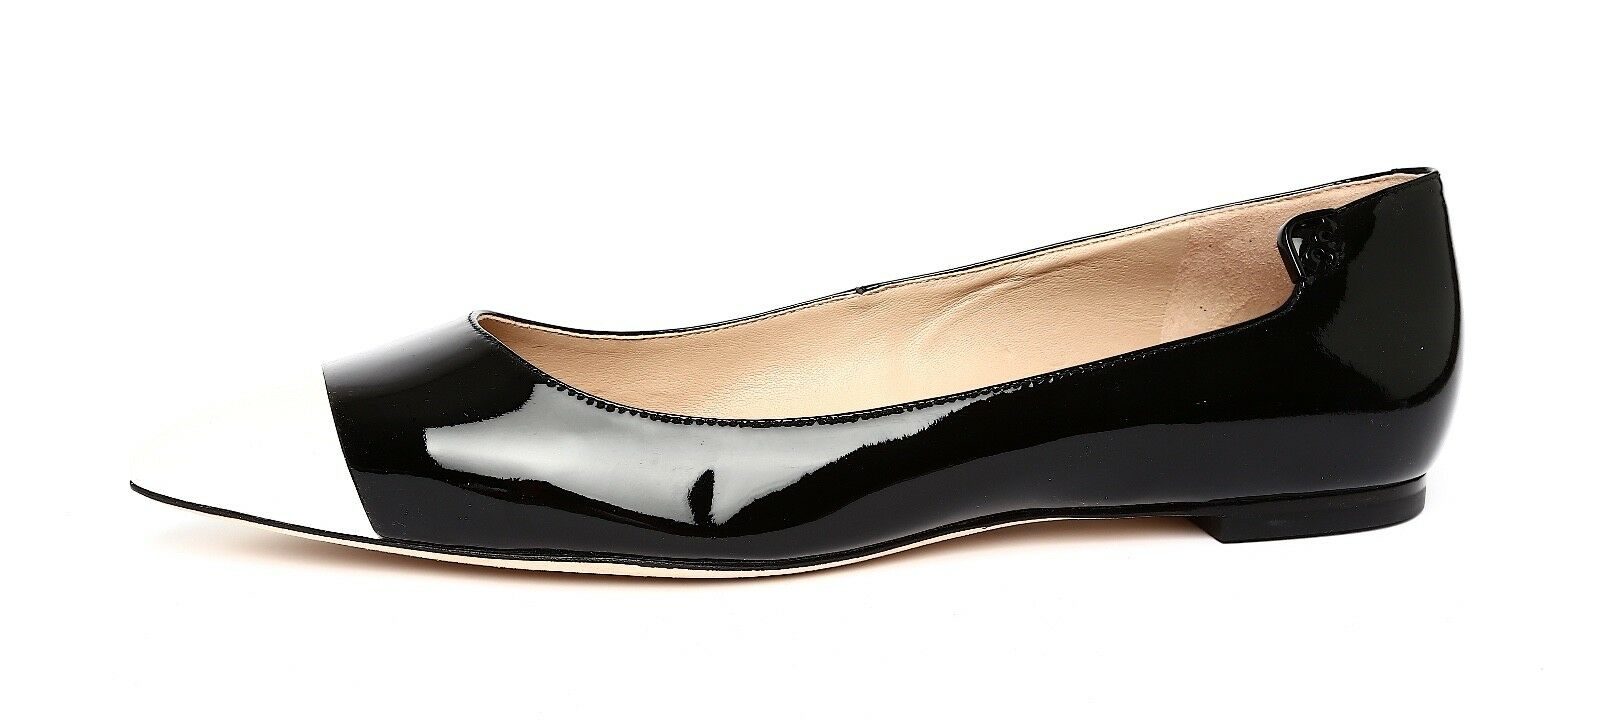 Tory Burch Elizabeth Women's Patent Patent Patent Leather Black White Flat Sz 10M 4706 d595c3